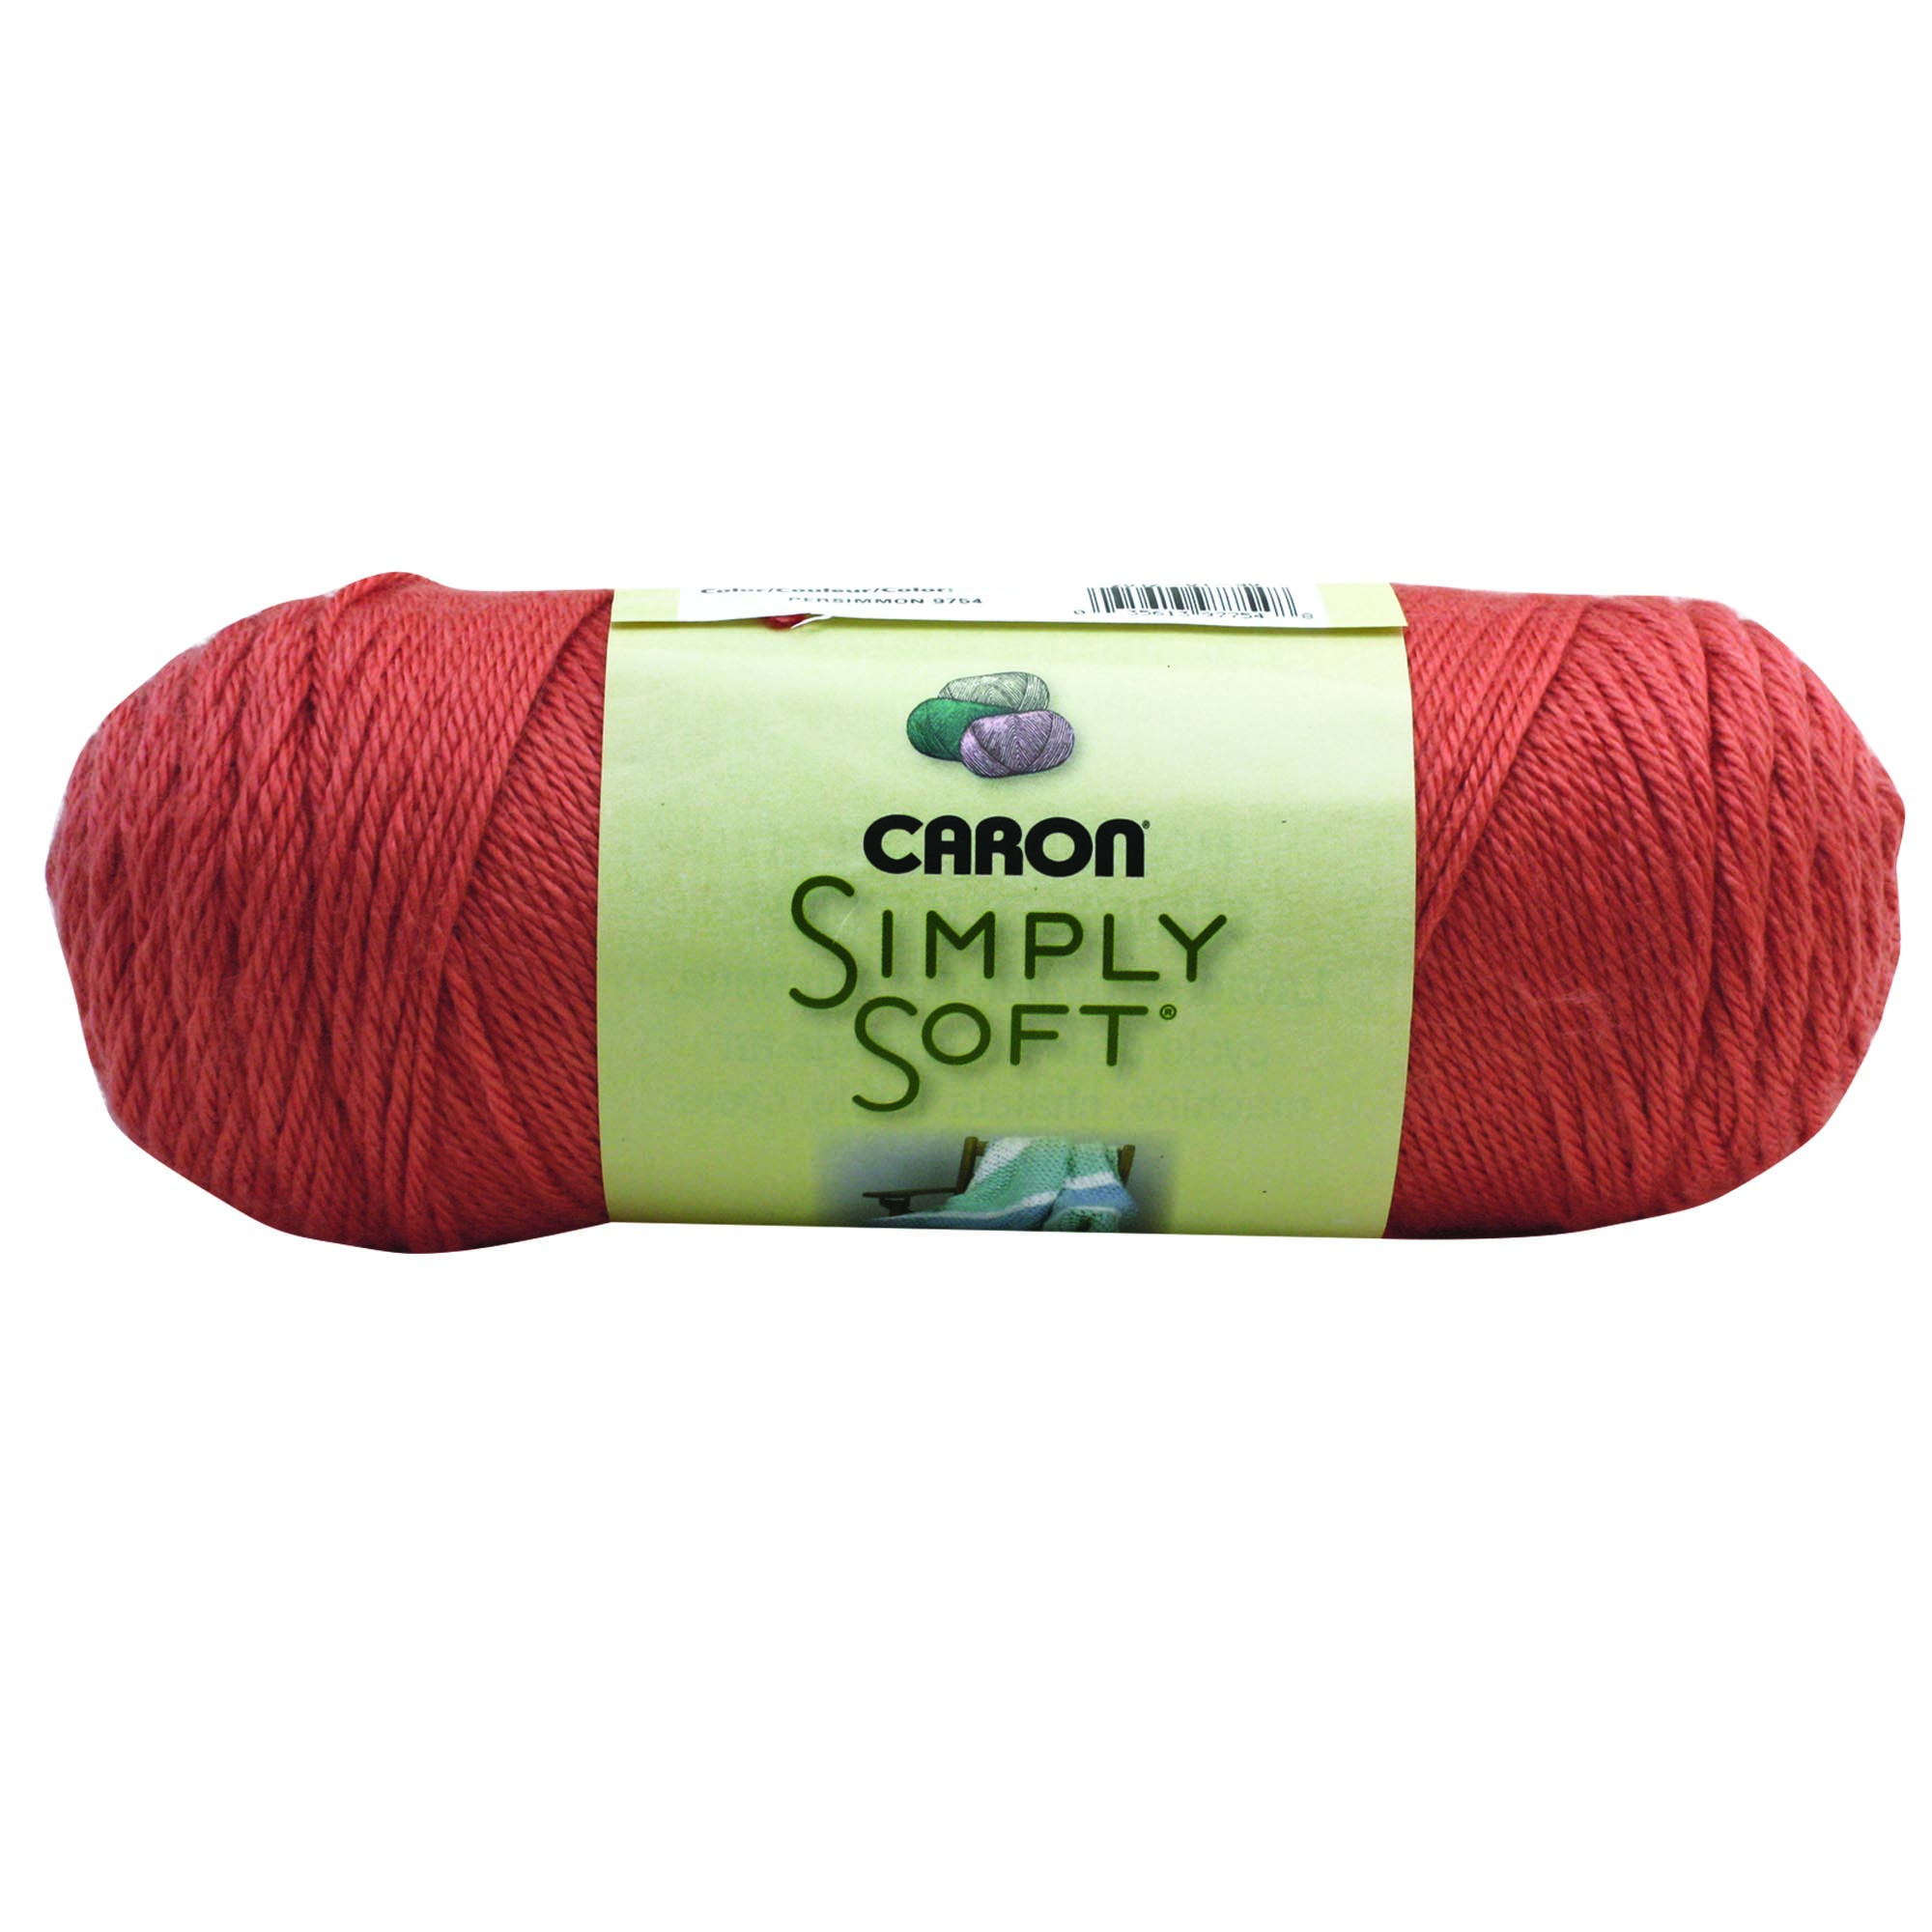 Caron Simply Soft Persimmon 170g - 6oz